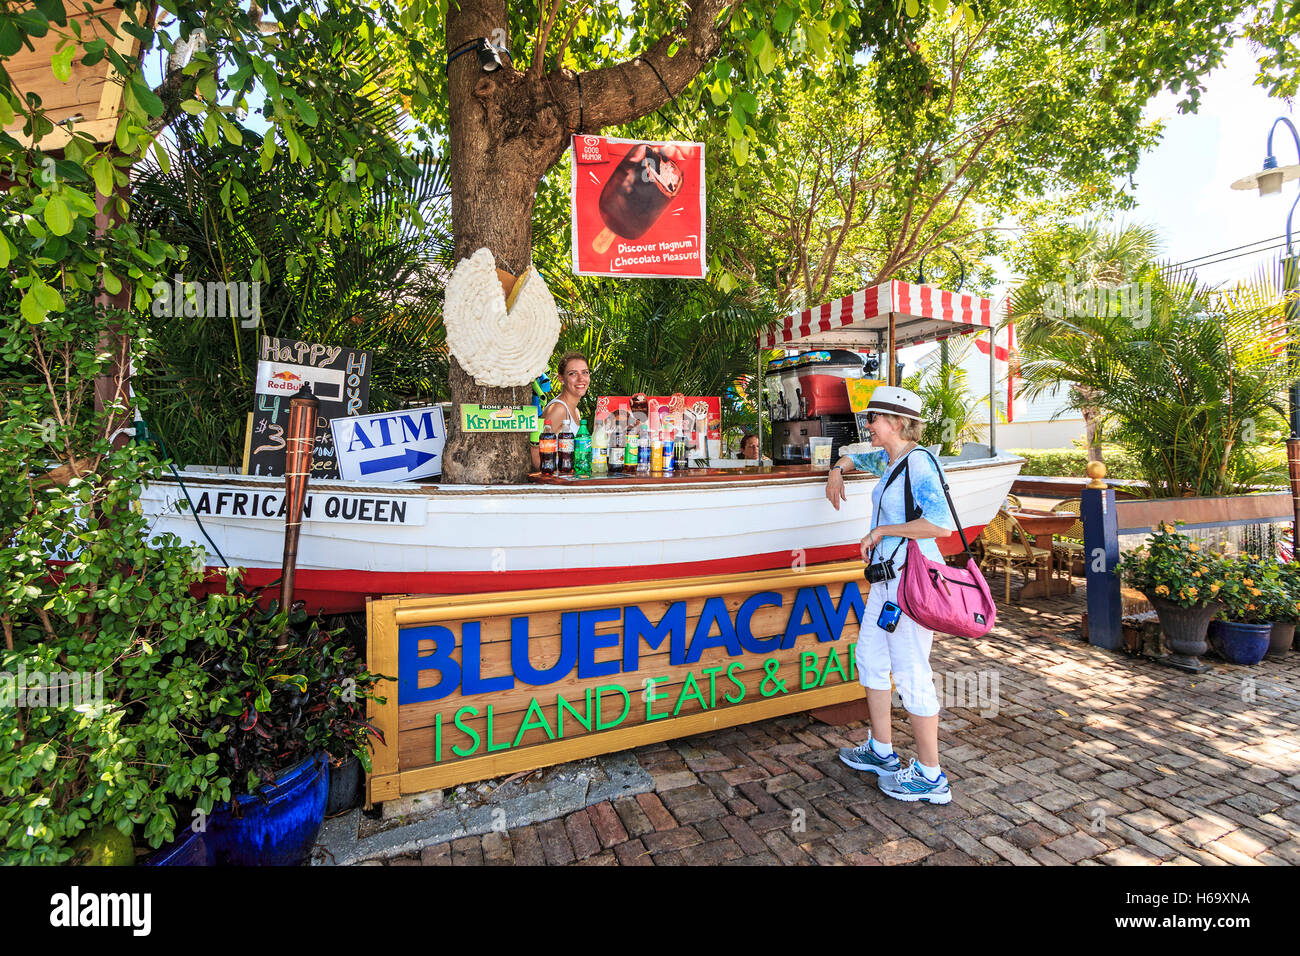 Woman stops to buy drink at outdoor, roadside bar in Key West, Florida. - Stock Image